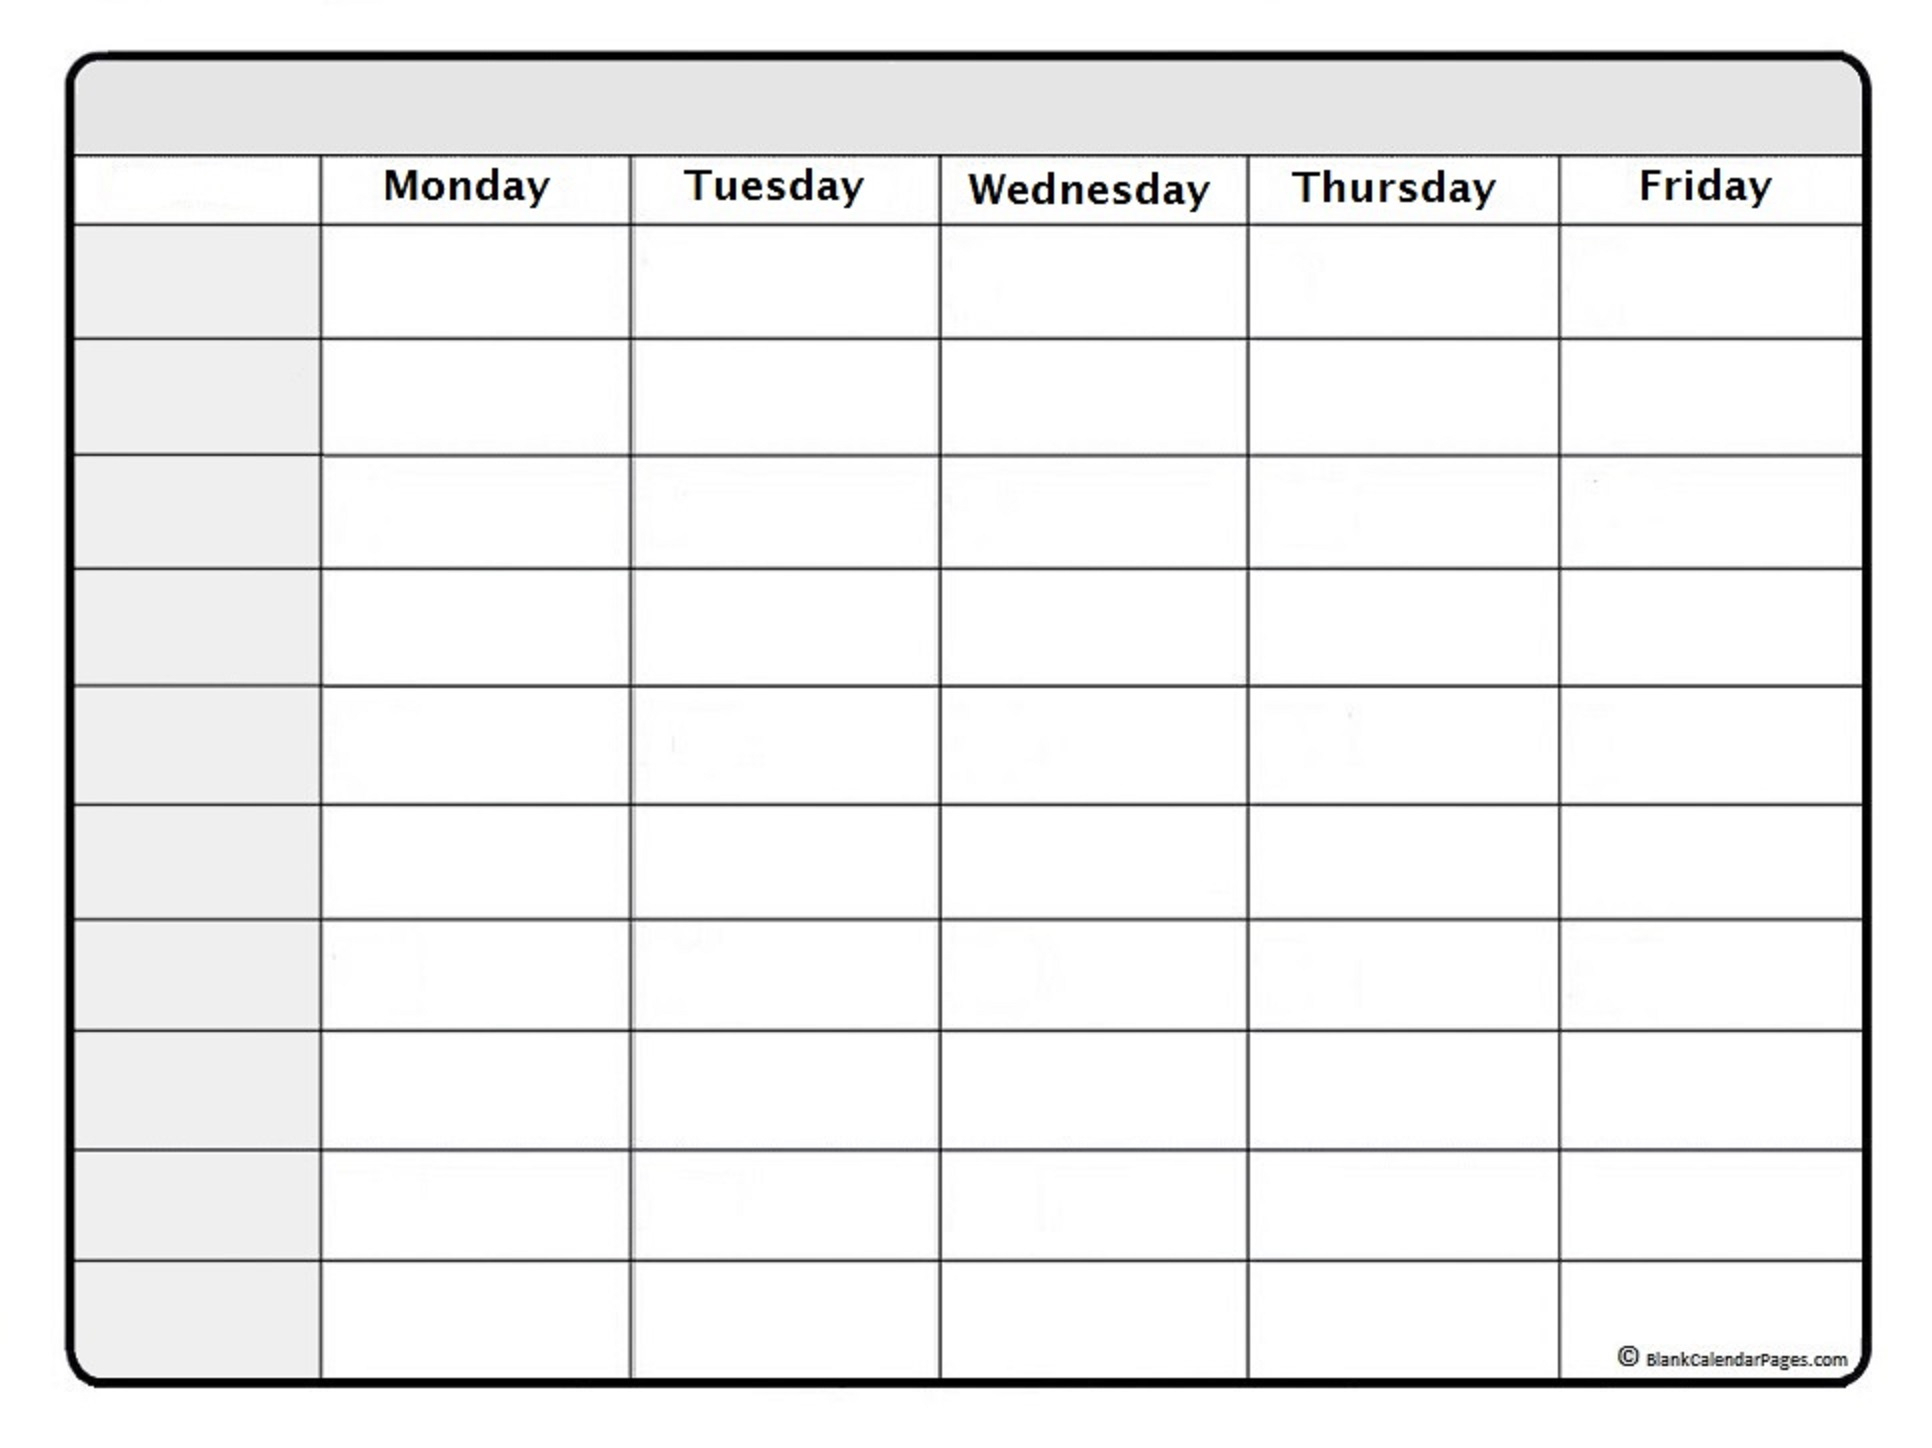 August 2019 Weekly Calendar   August 2019 Weekly Calendar Template with Weekly Claendat Template For